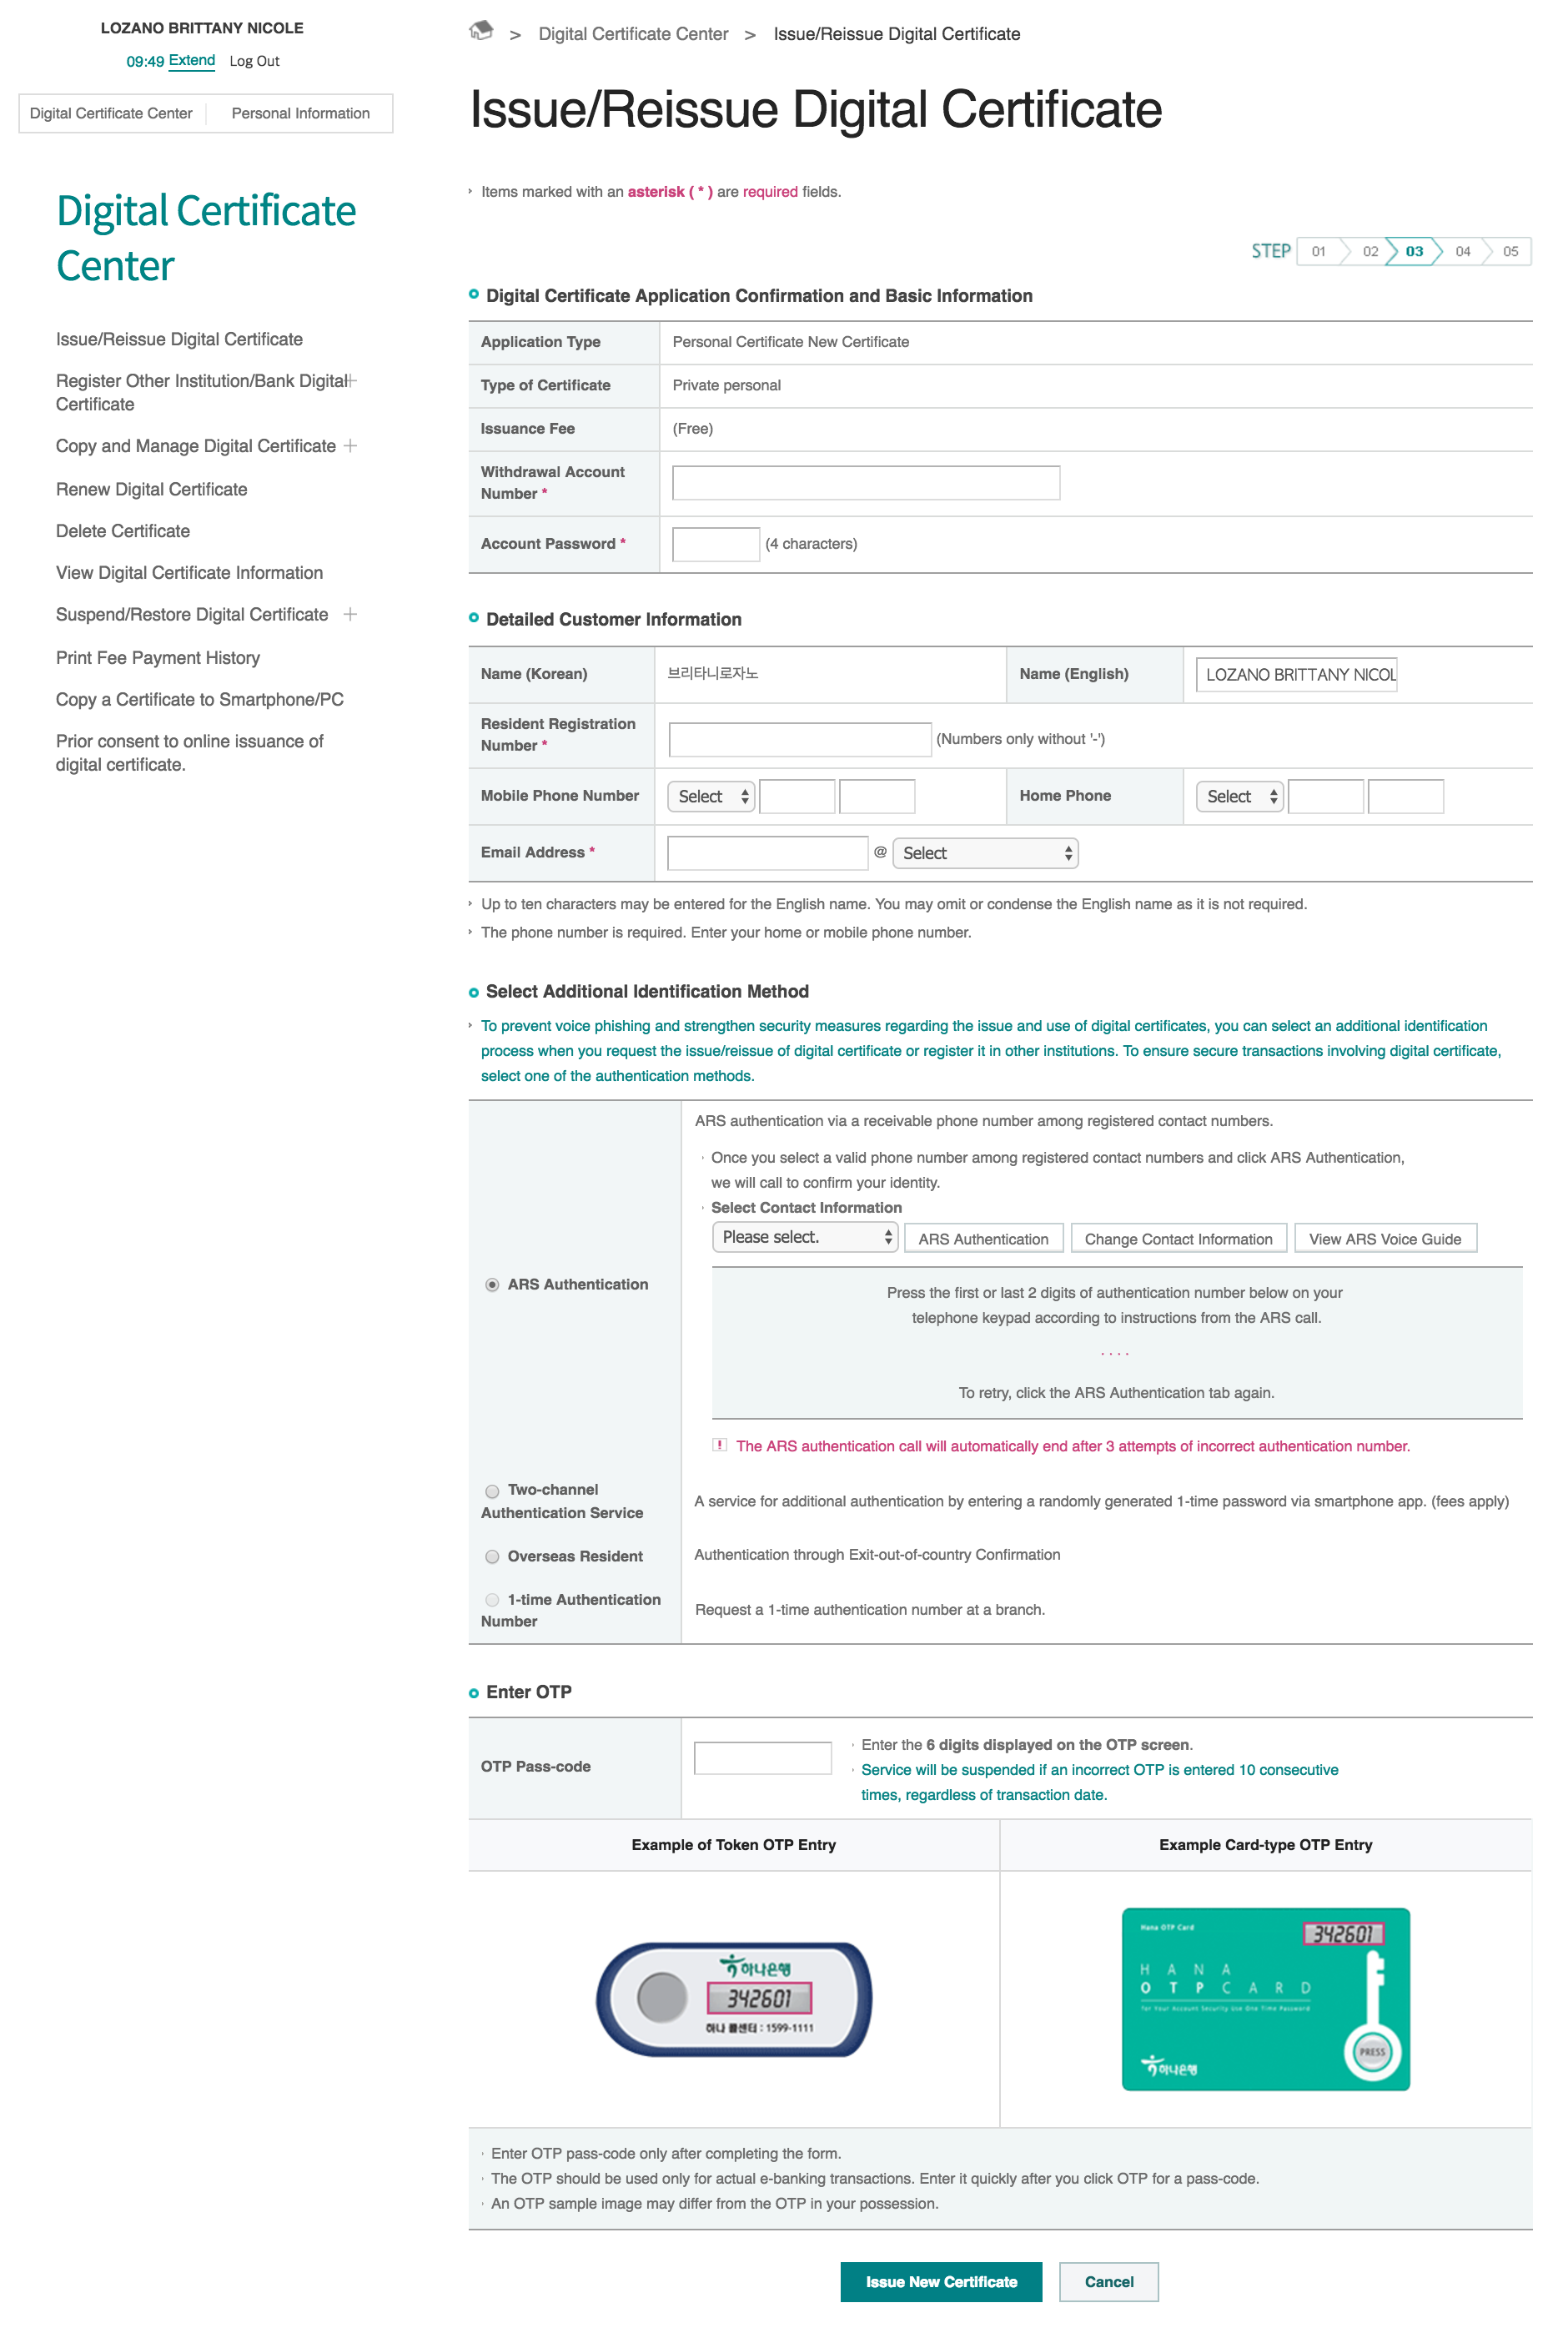 How to Get an Official ID Certificate for Online Use in